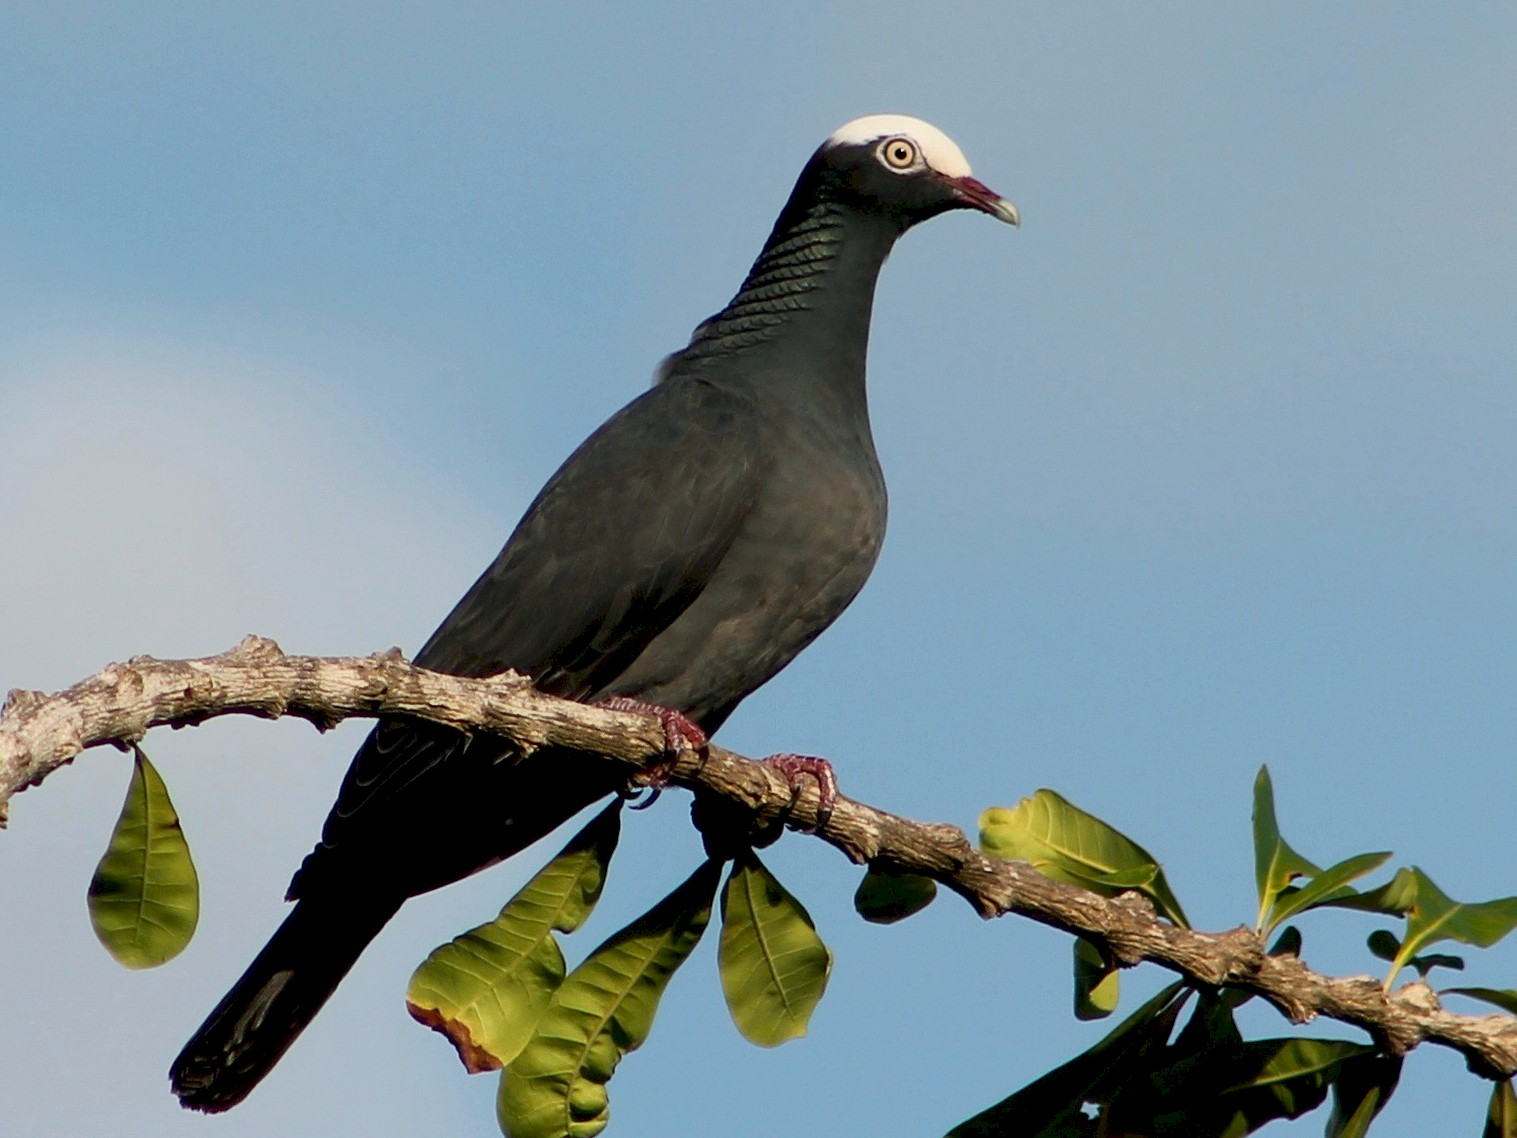 White-crowned Pigeon - Holly Kleindienst